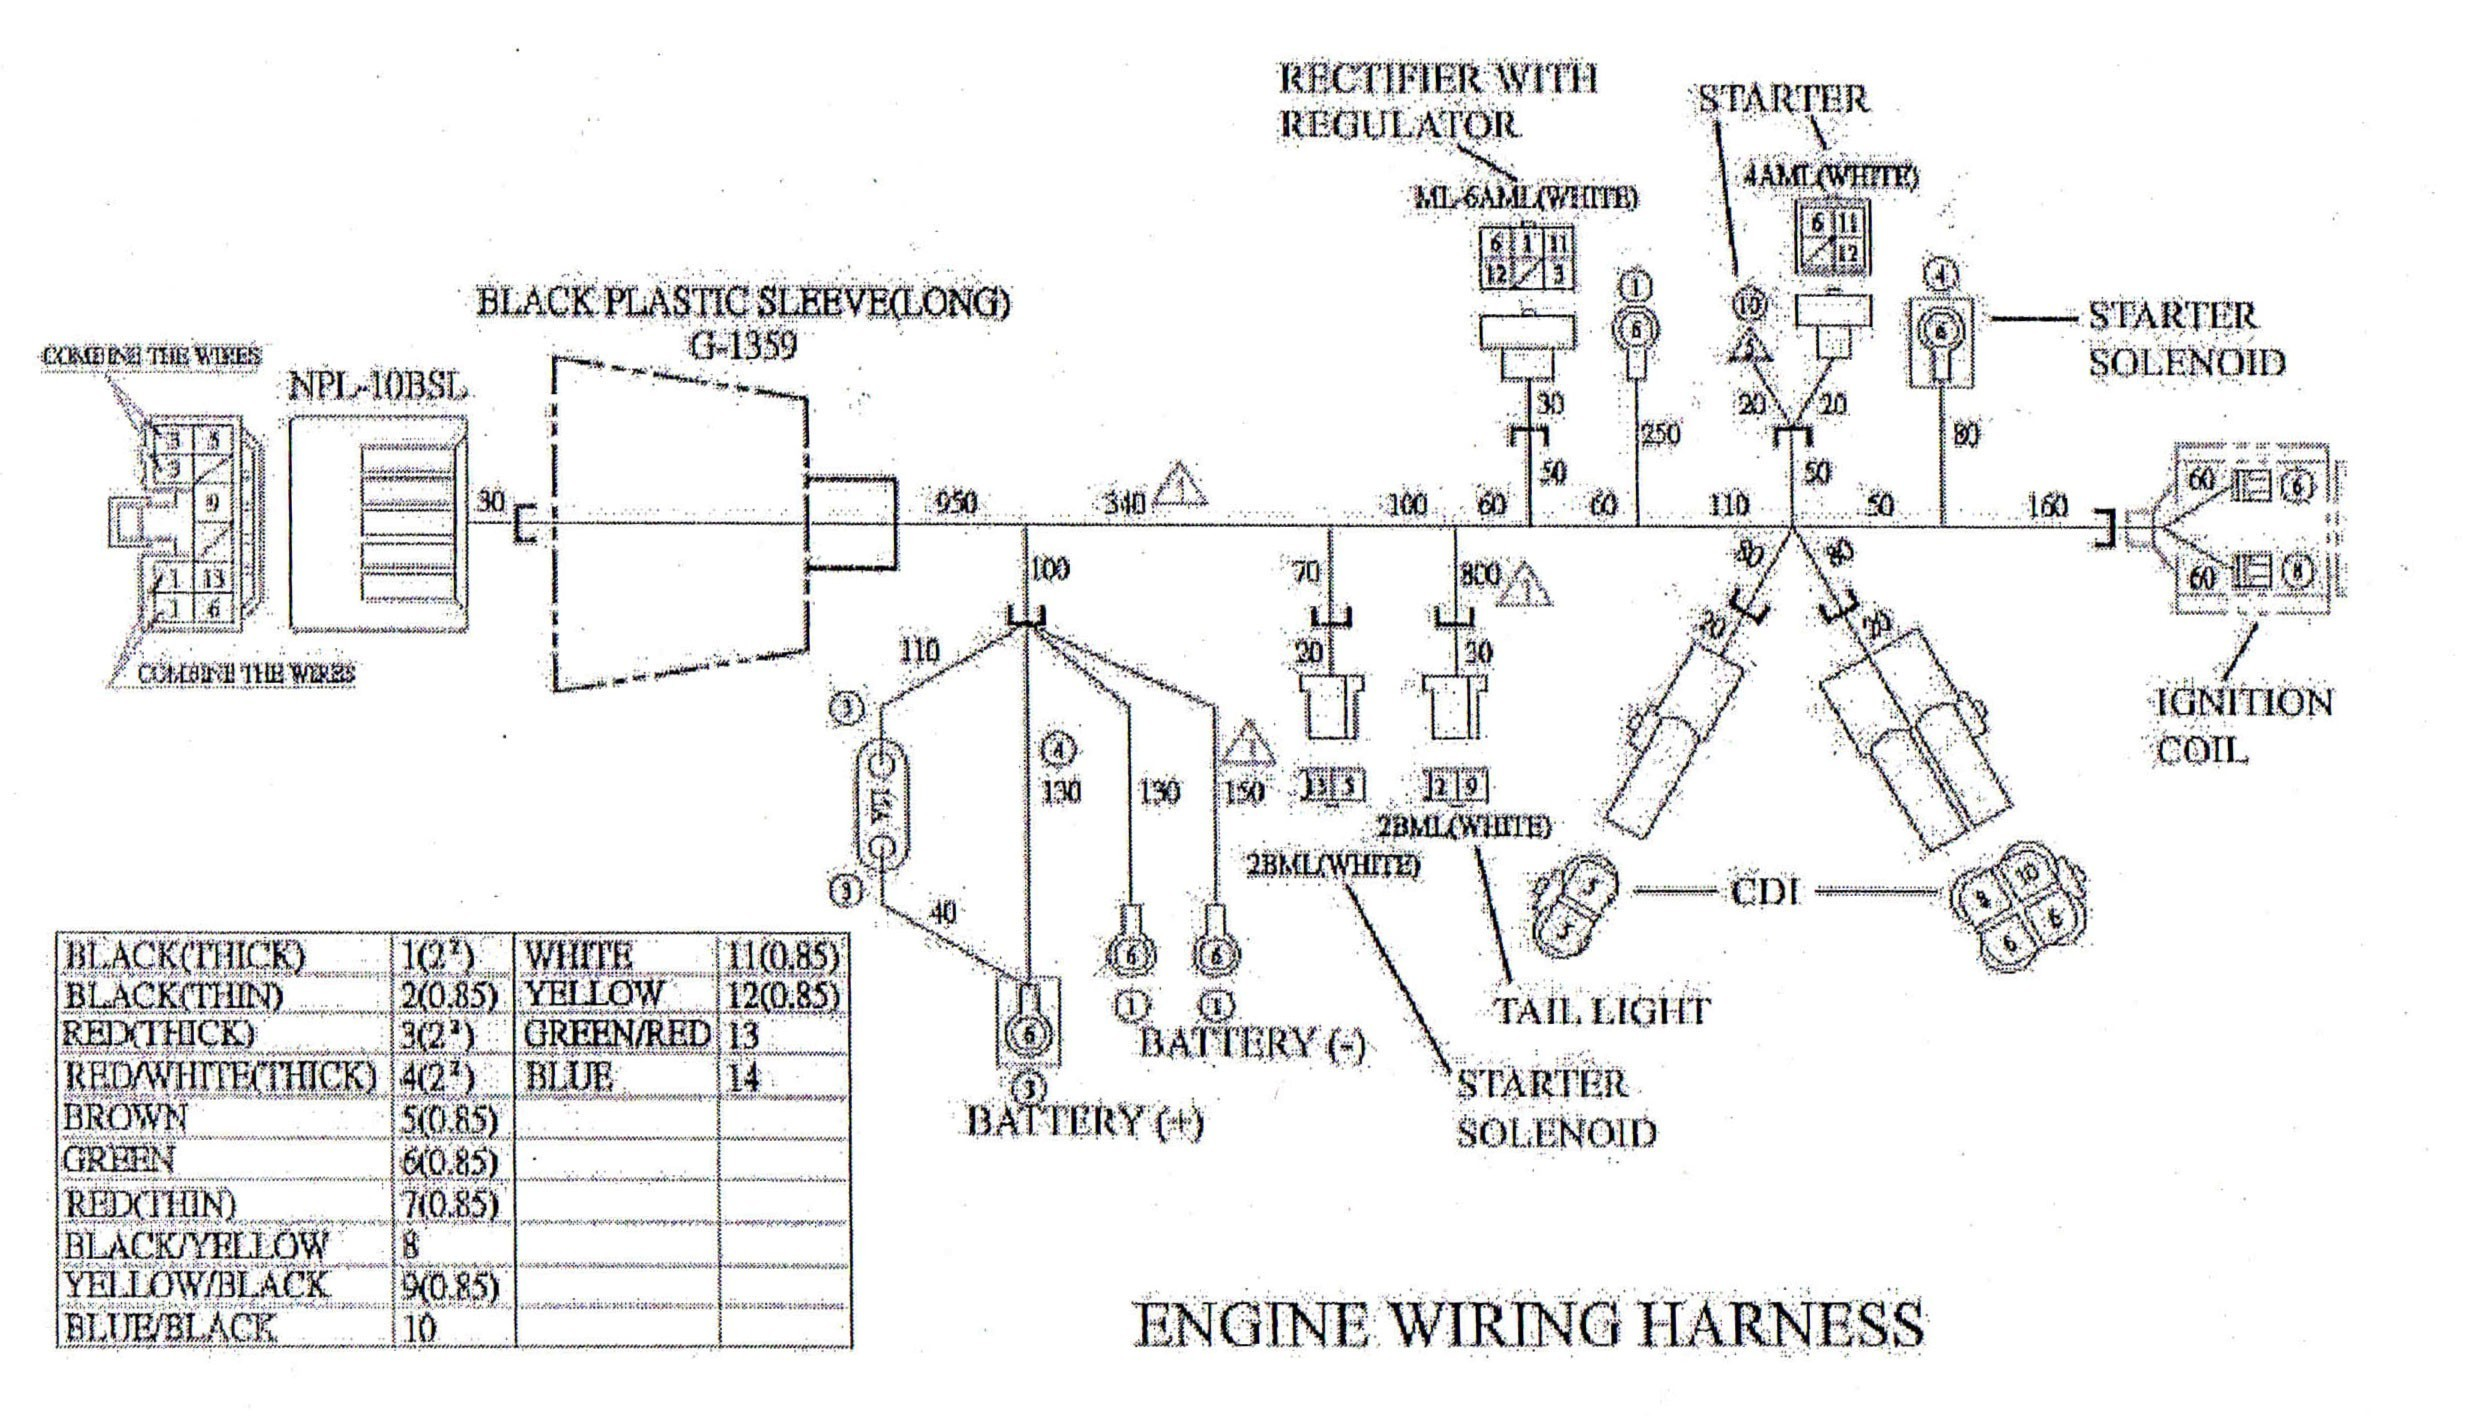 Engine Wiring Diagram Engine Schematic Diagram Unique Light Wiring Diagram Diagram – My Of Engine Wiring Diagram